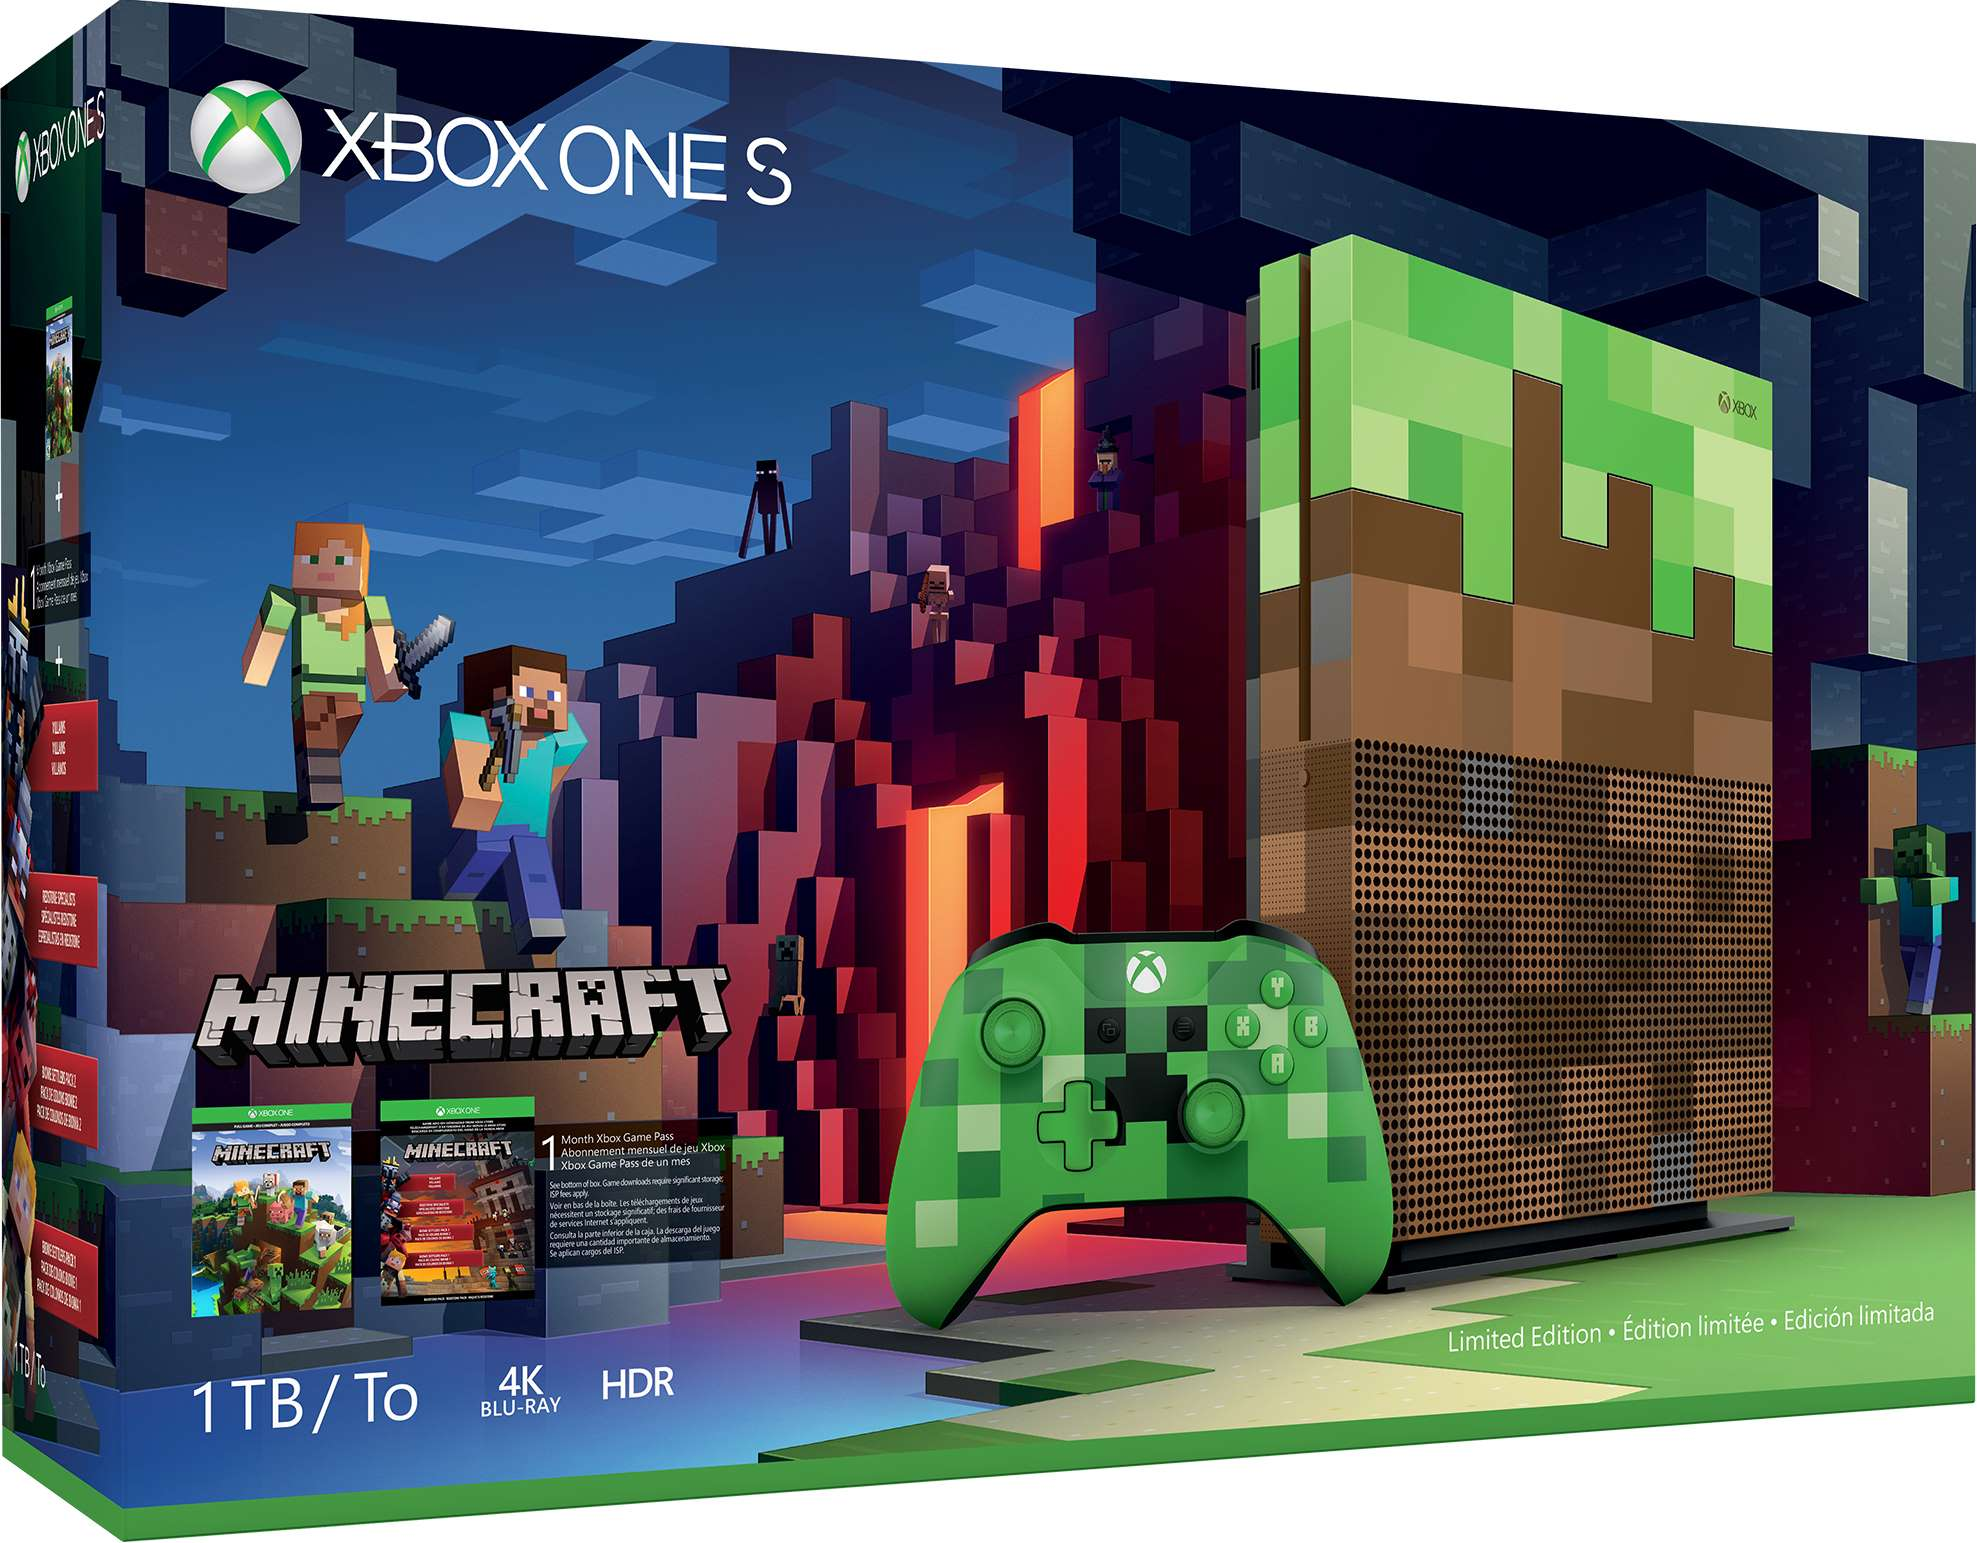 xbox one x et s microsoft d voile deux ditions collectors la gamescom frandroid. Black Bedroom Furniture Sets. Home Design Ideas